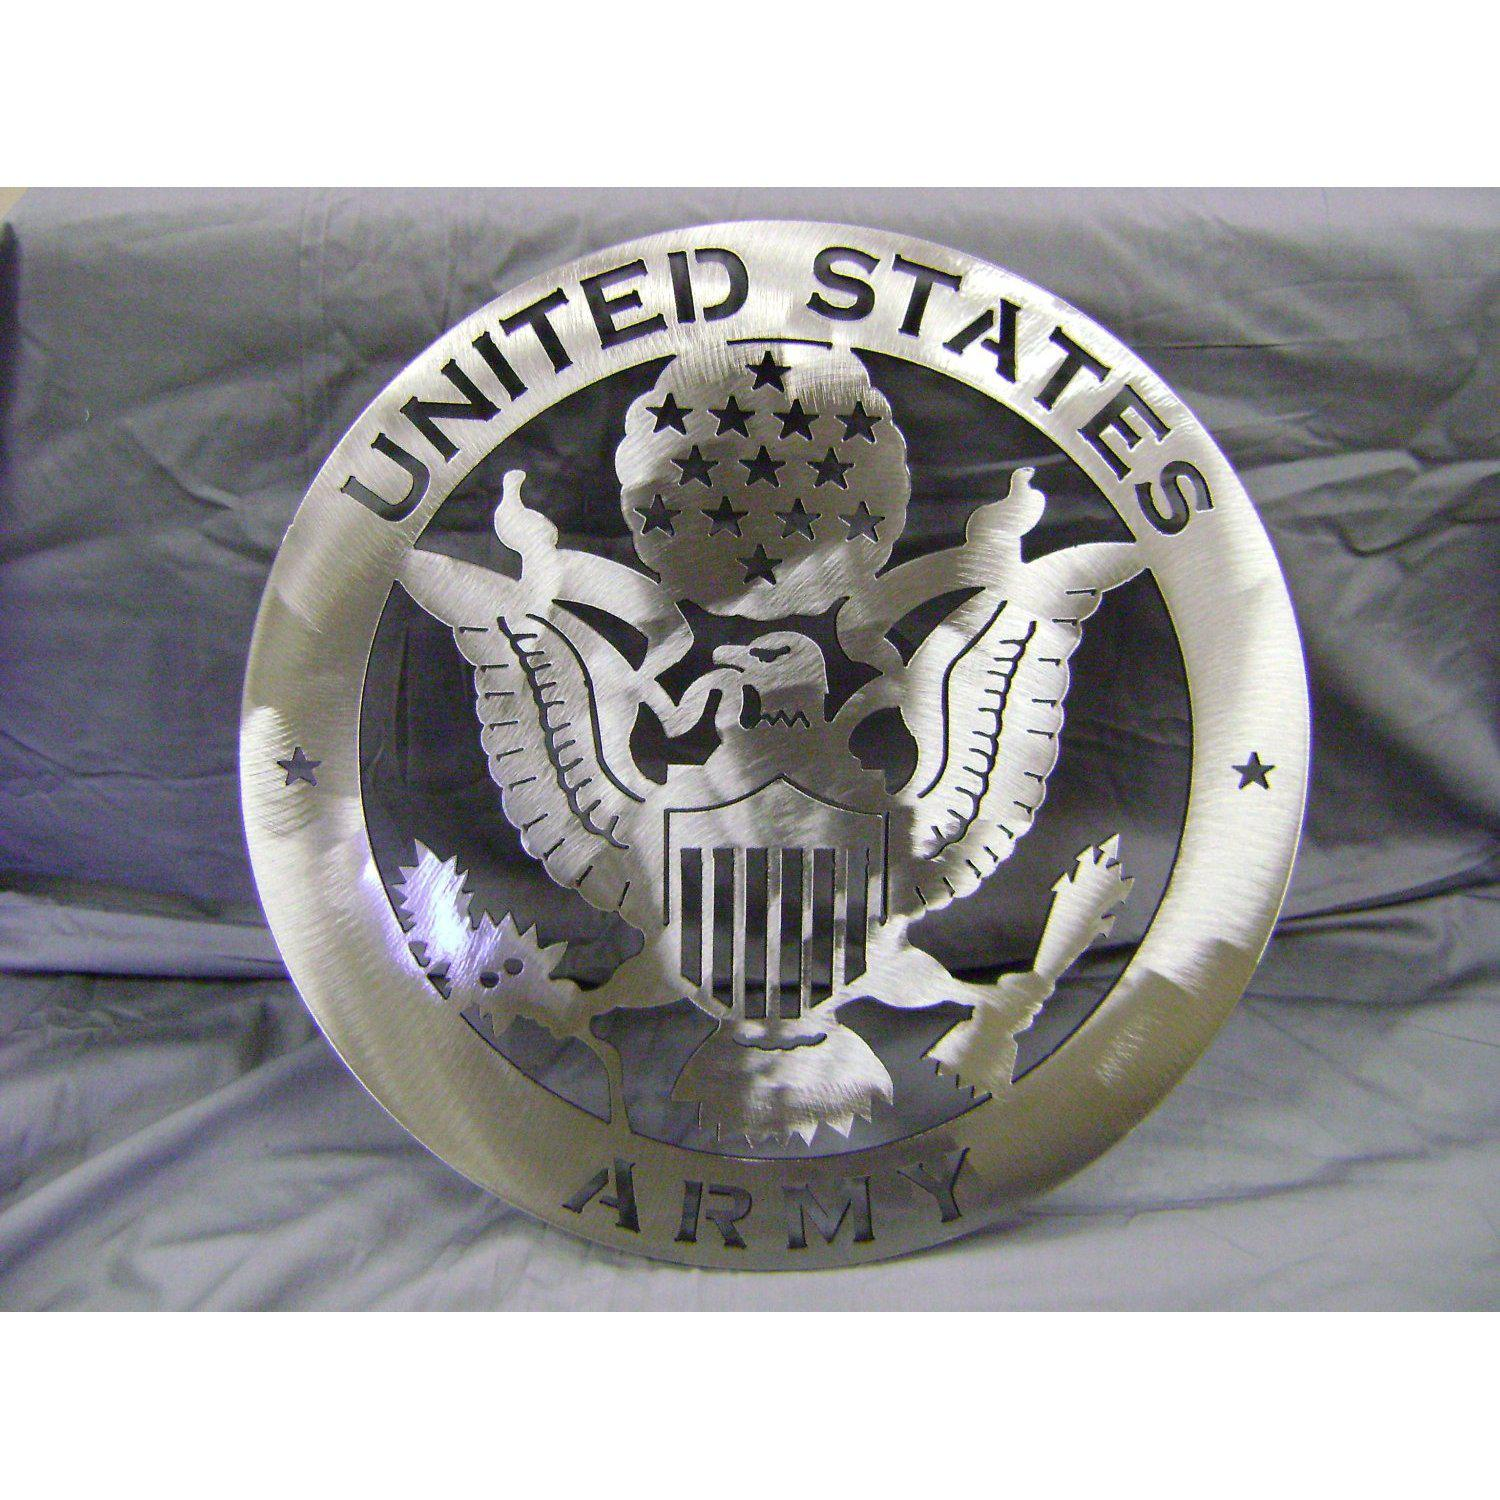 United States Army Emblem Military Sign Stainless